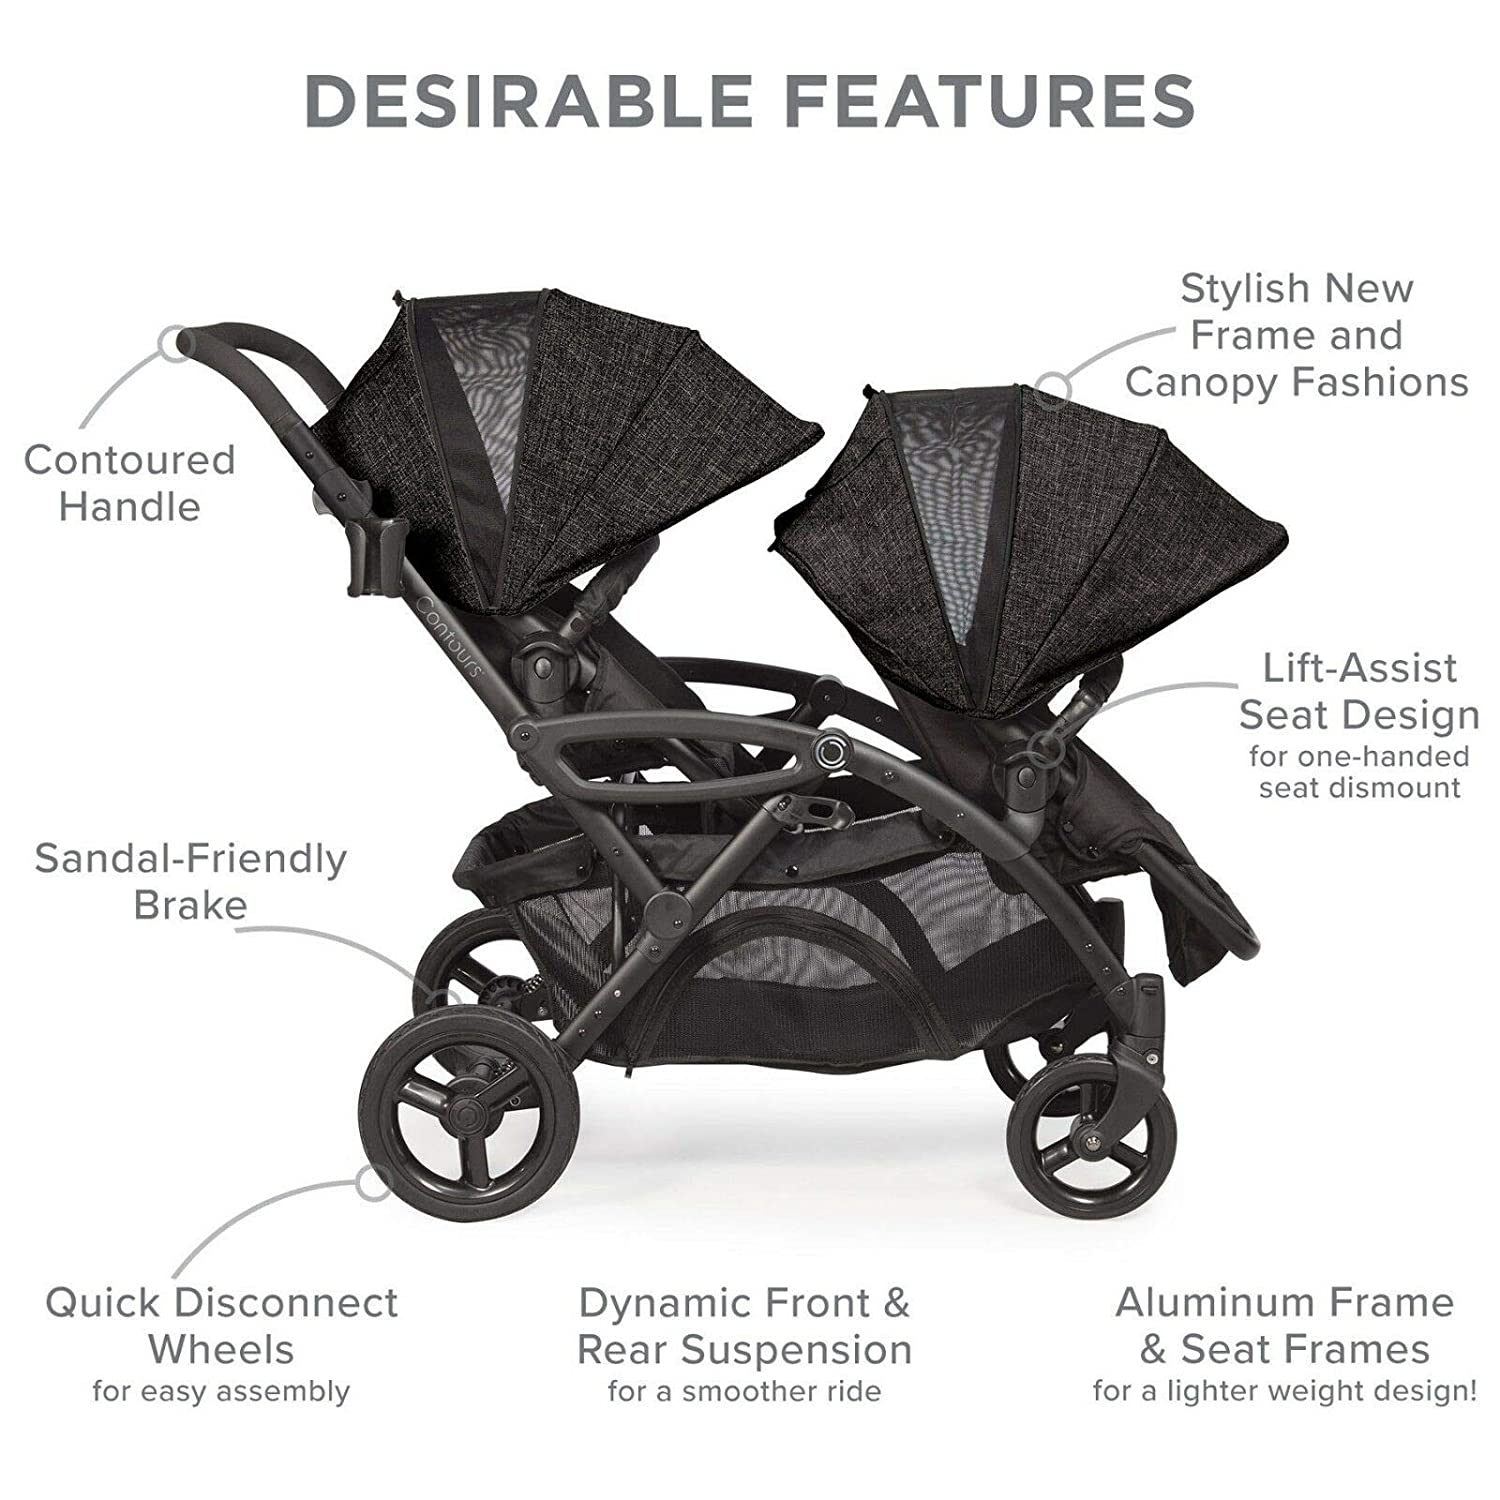 Contours Options Elite Tandem Double Toddler Baby Stroller, Multiple Seating Configurations, Reclining Seats, Lightweight Frame, Car Seat Compatibility, Large Storage Basket, Carbon Gray